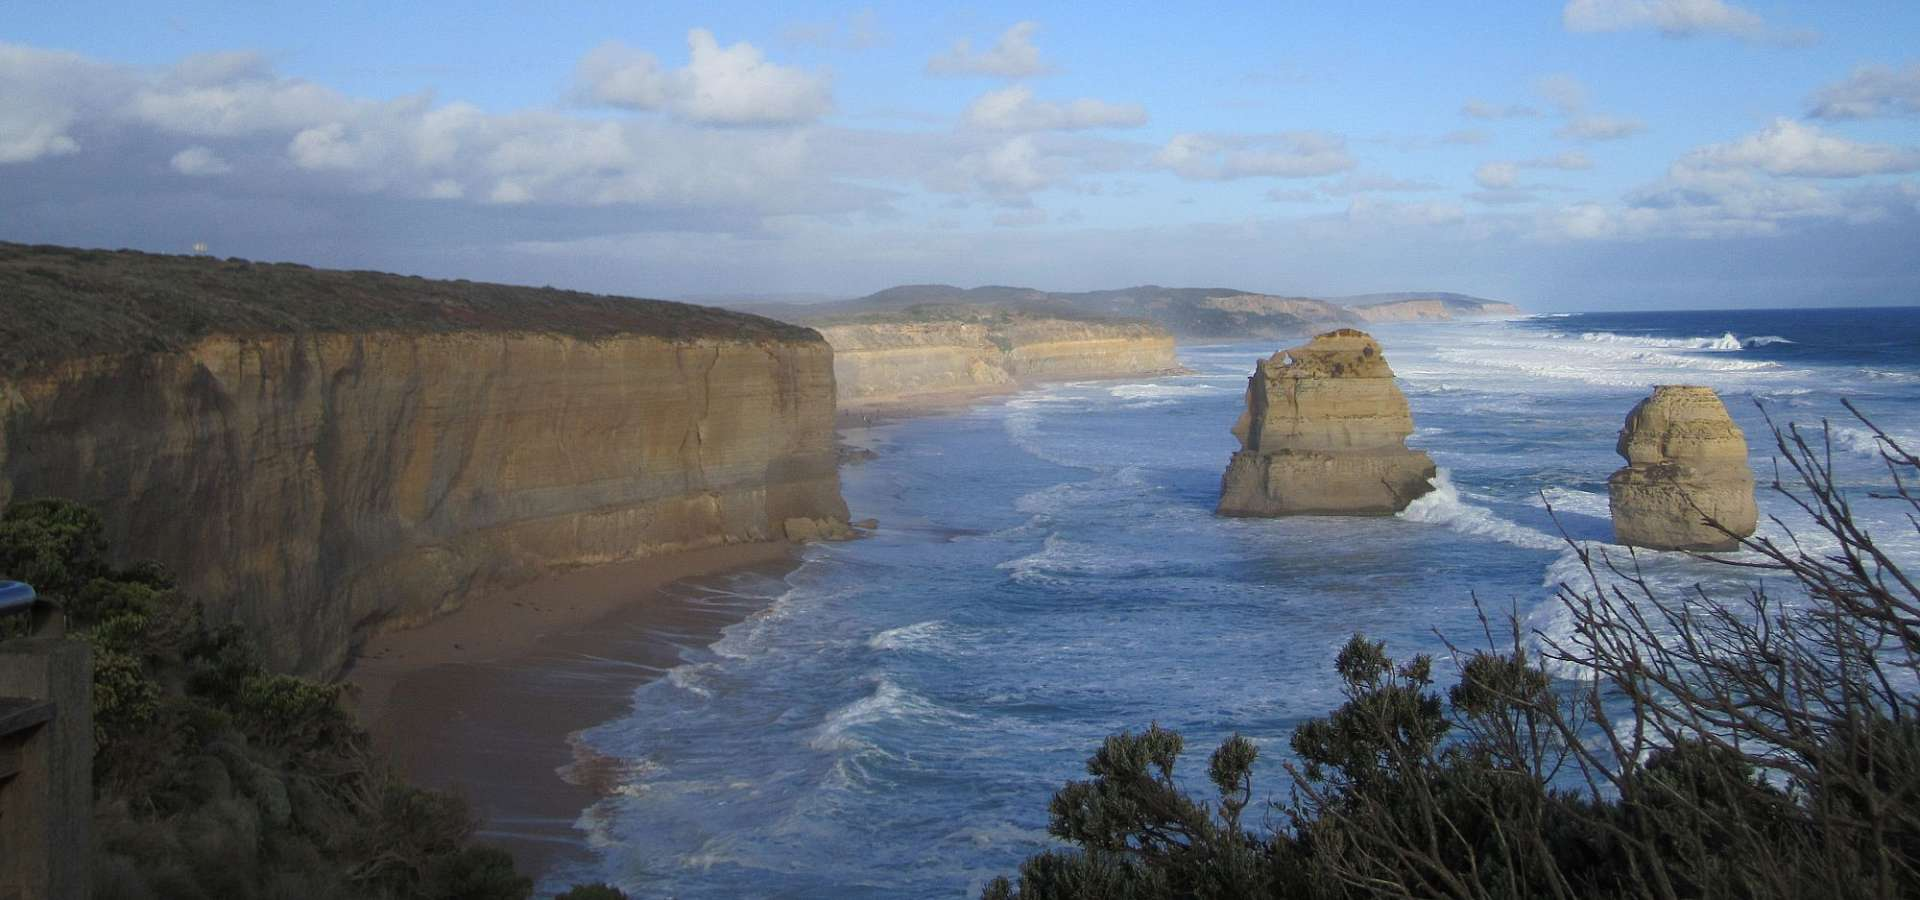 Great Ocean Road: Reisefoto von